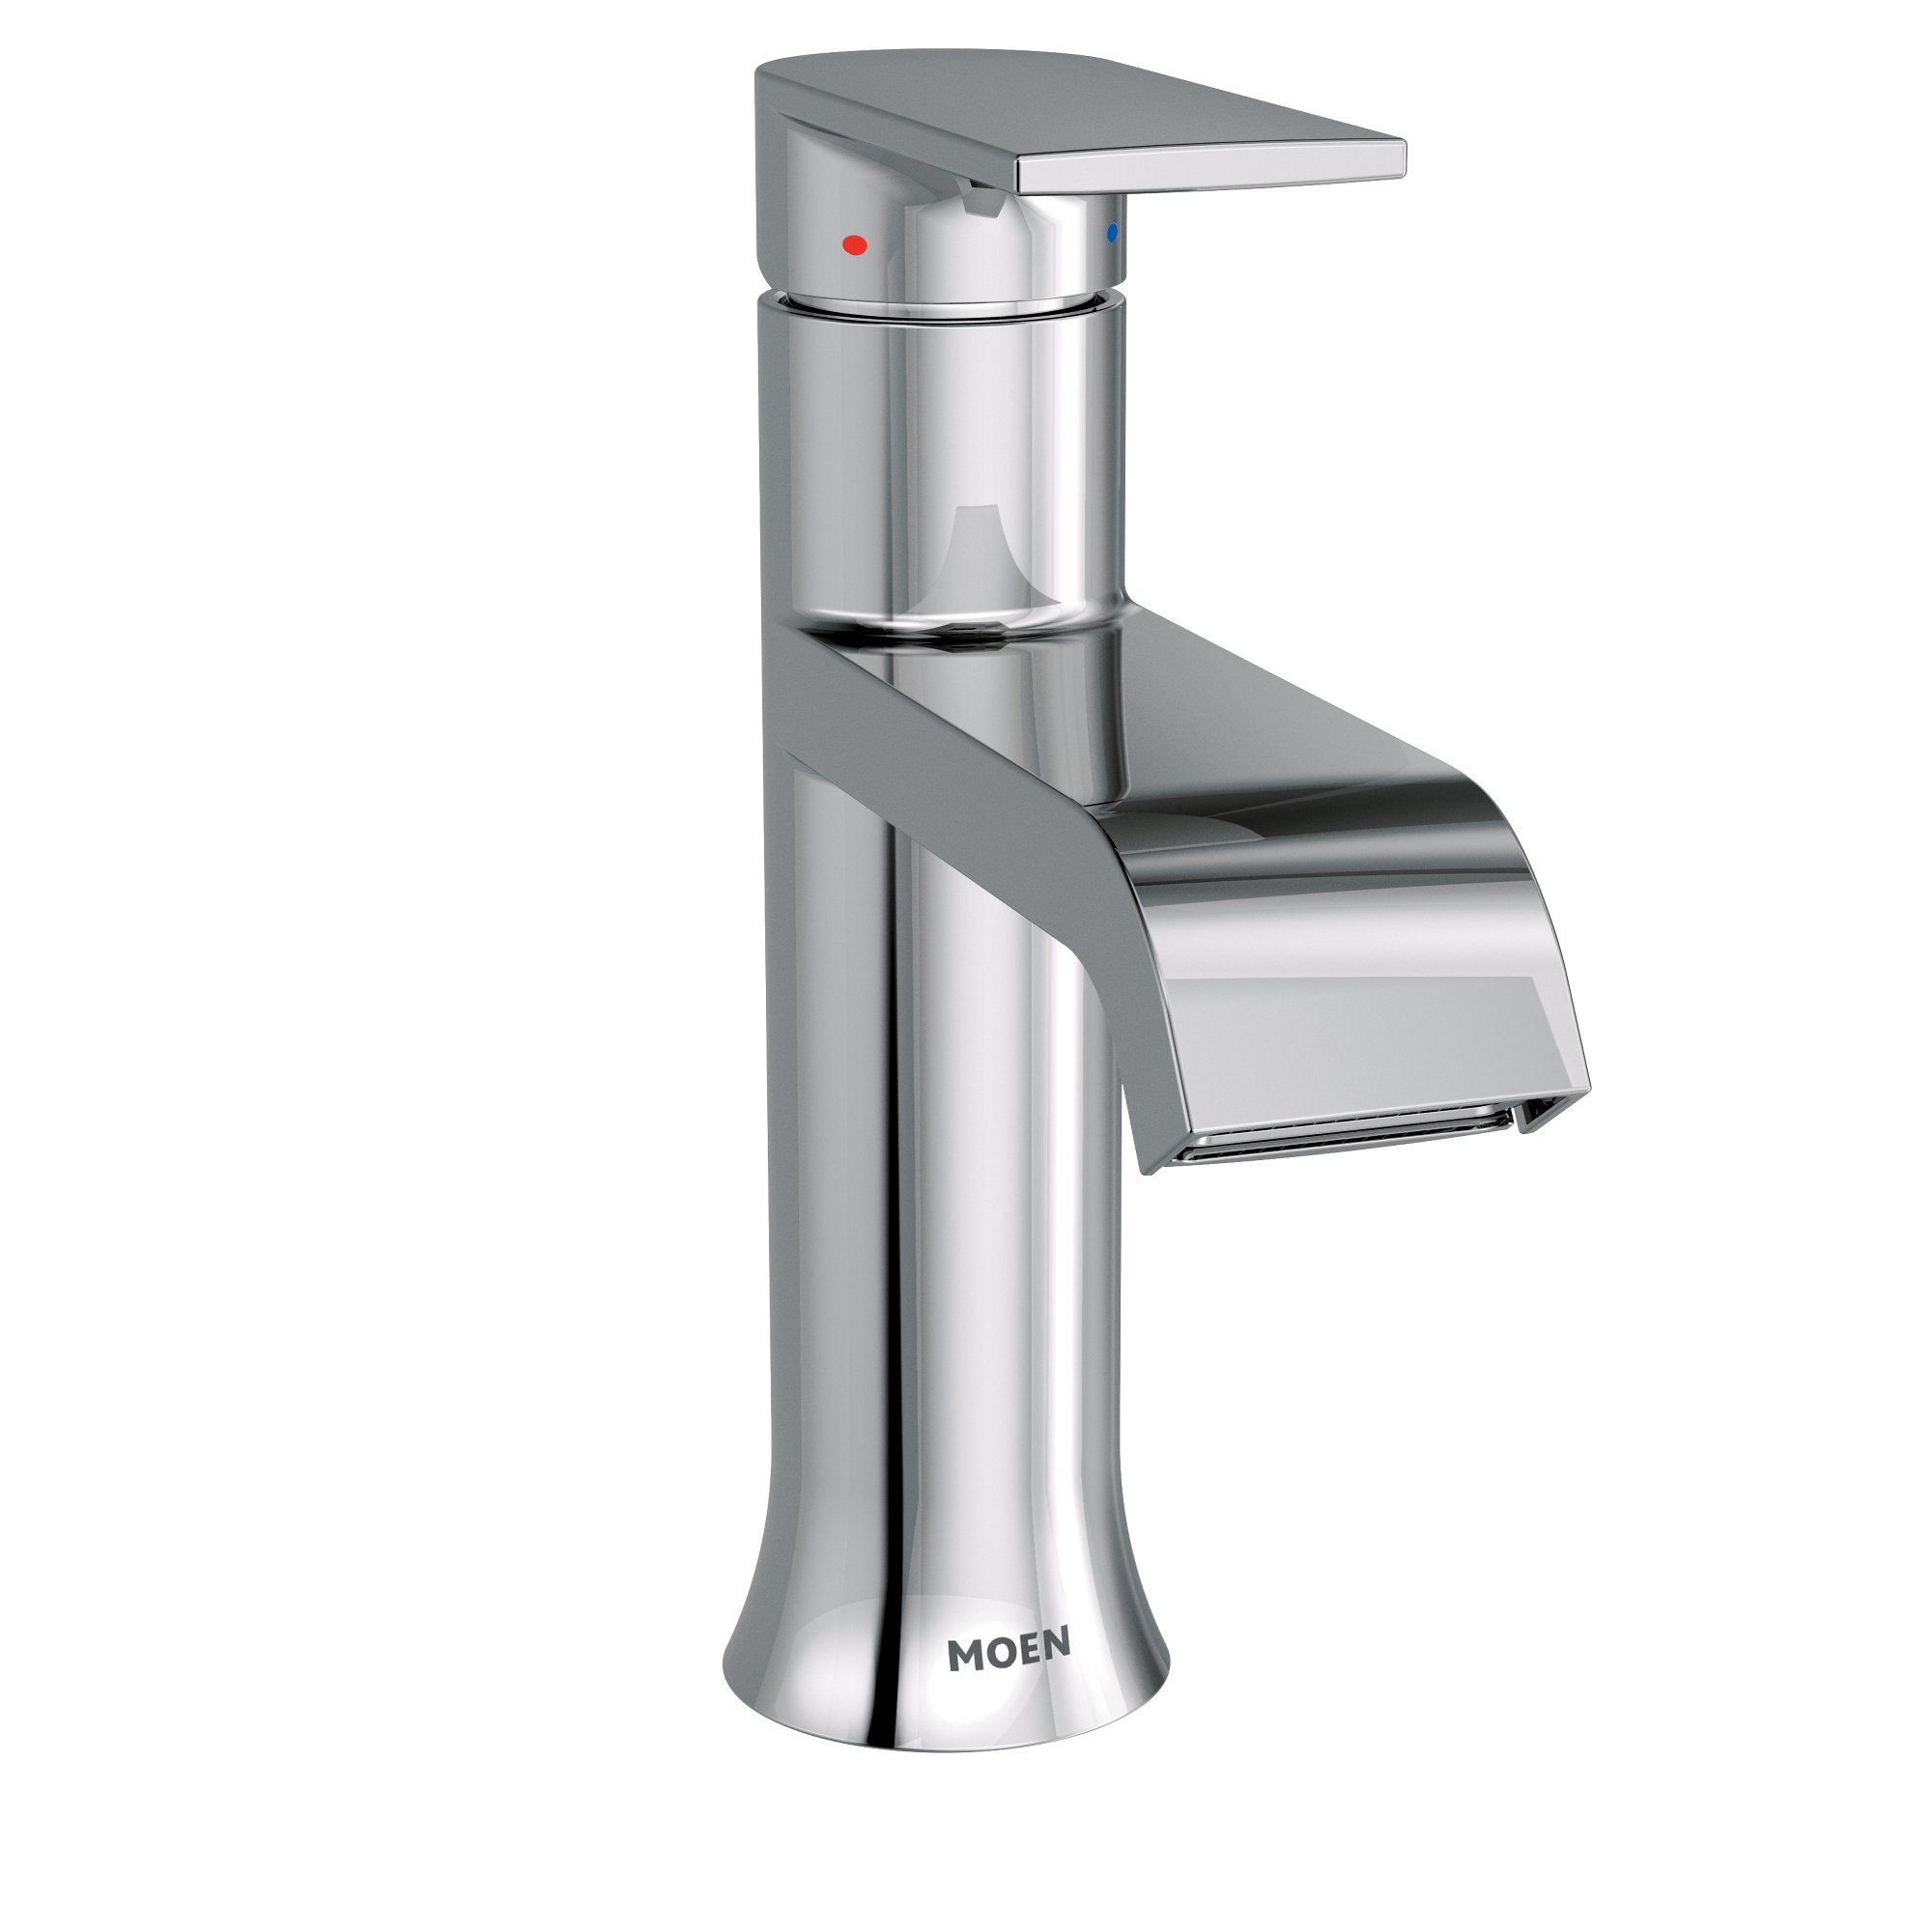 Moen 6702 Genta One-Handle High-Arc Bathroom Faucet with Drain Assembly, Chrome